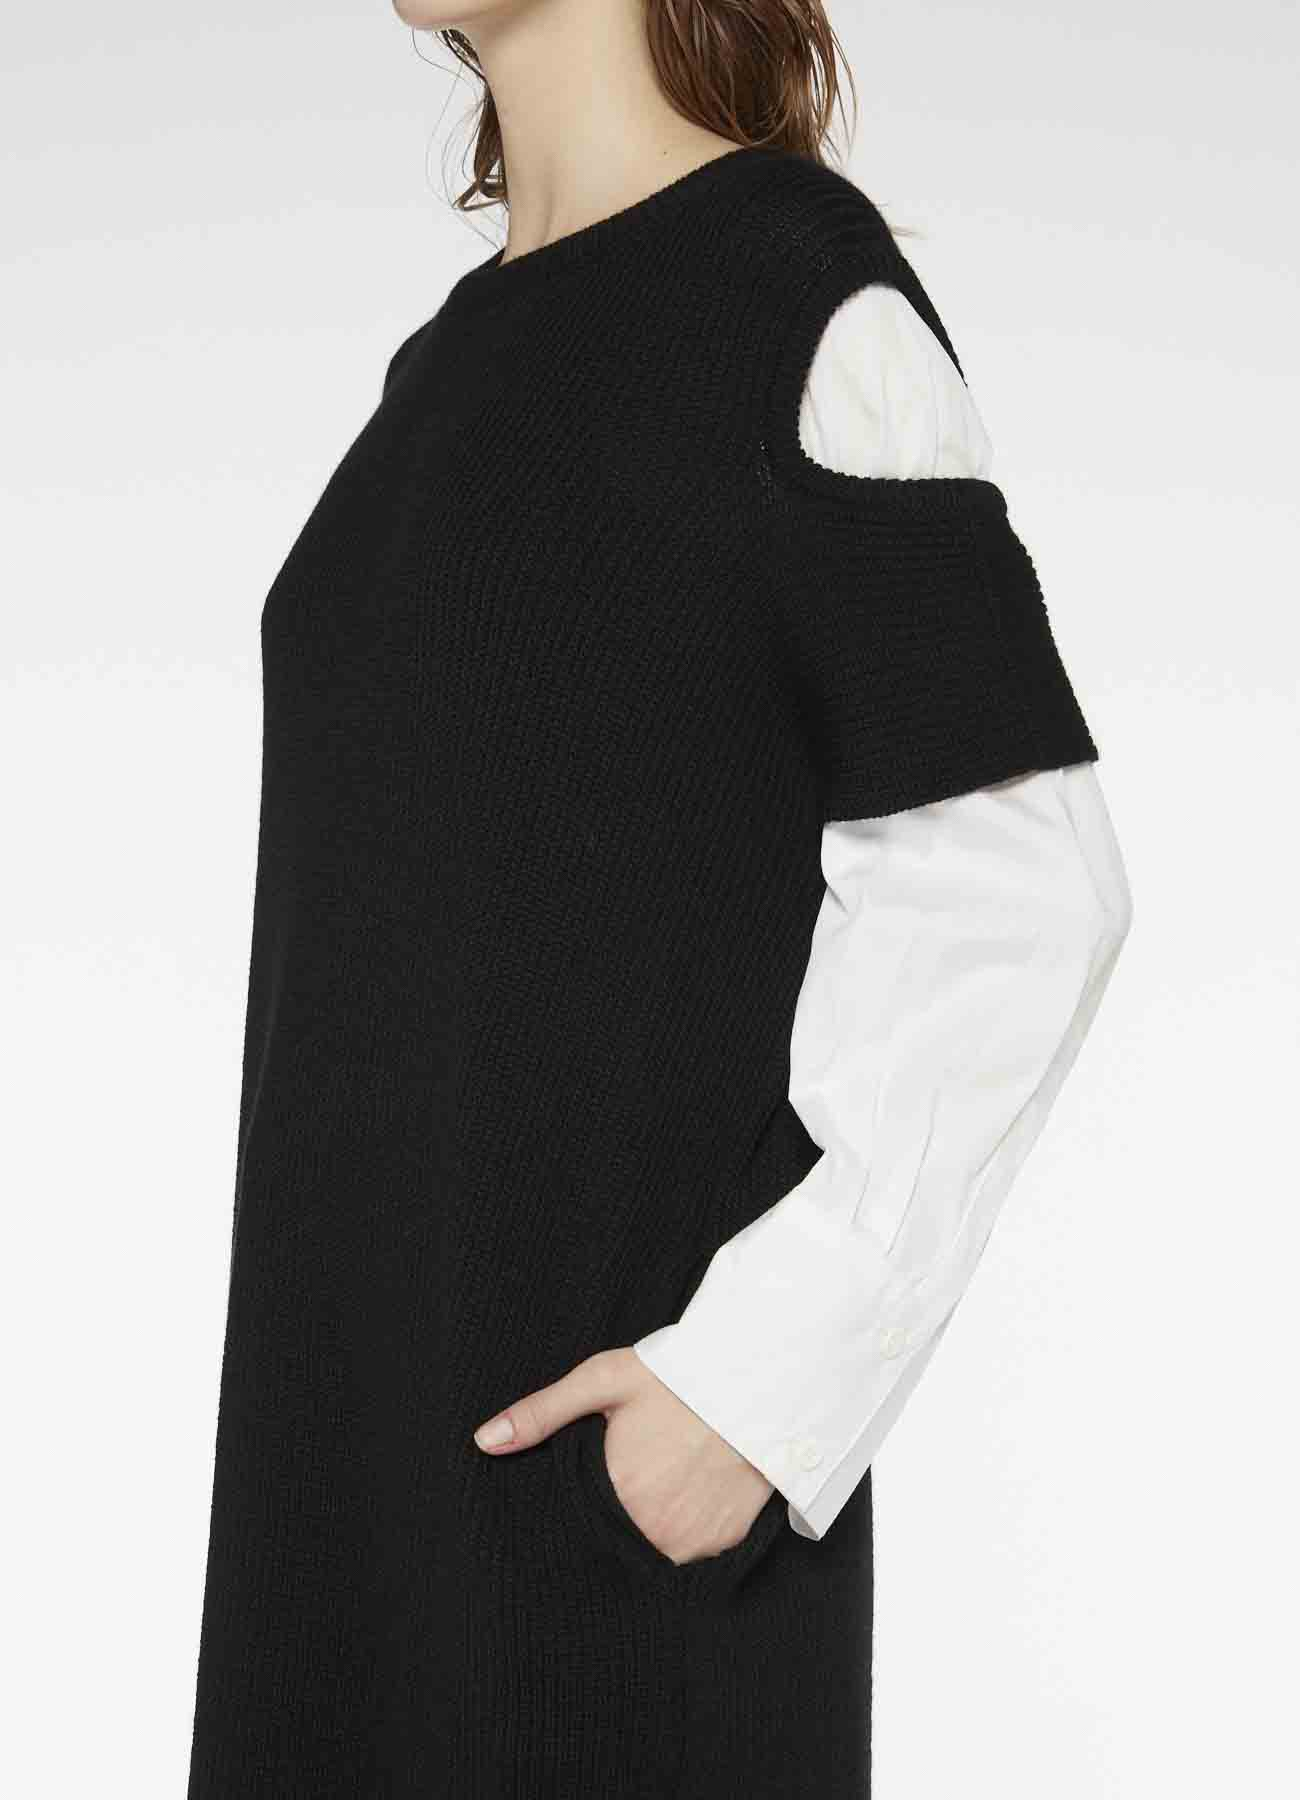 RISMATbyY's WOOL SHOULDER HOLE DRESS WITH SHIRT